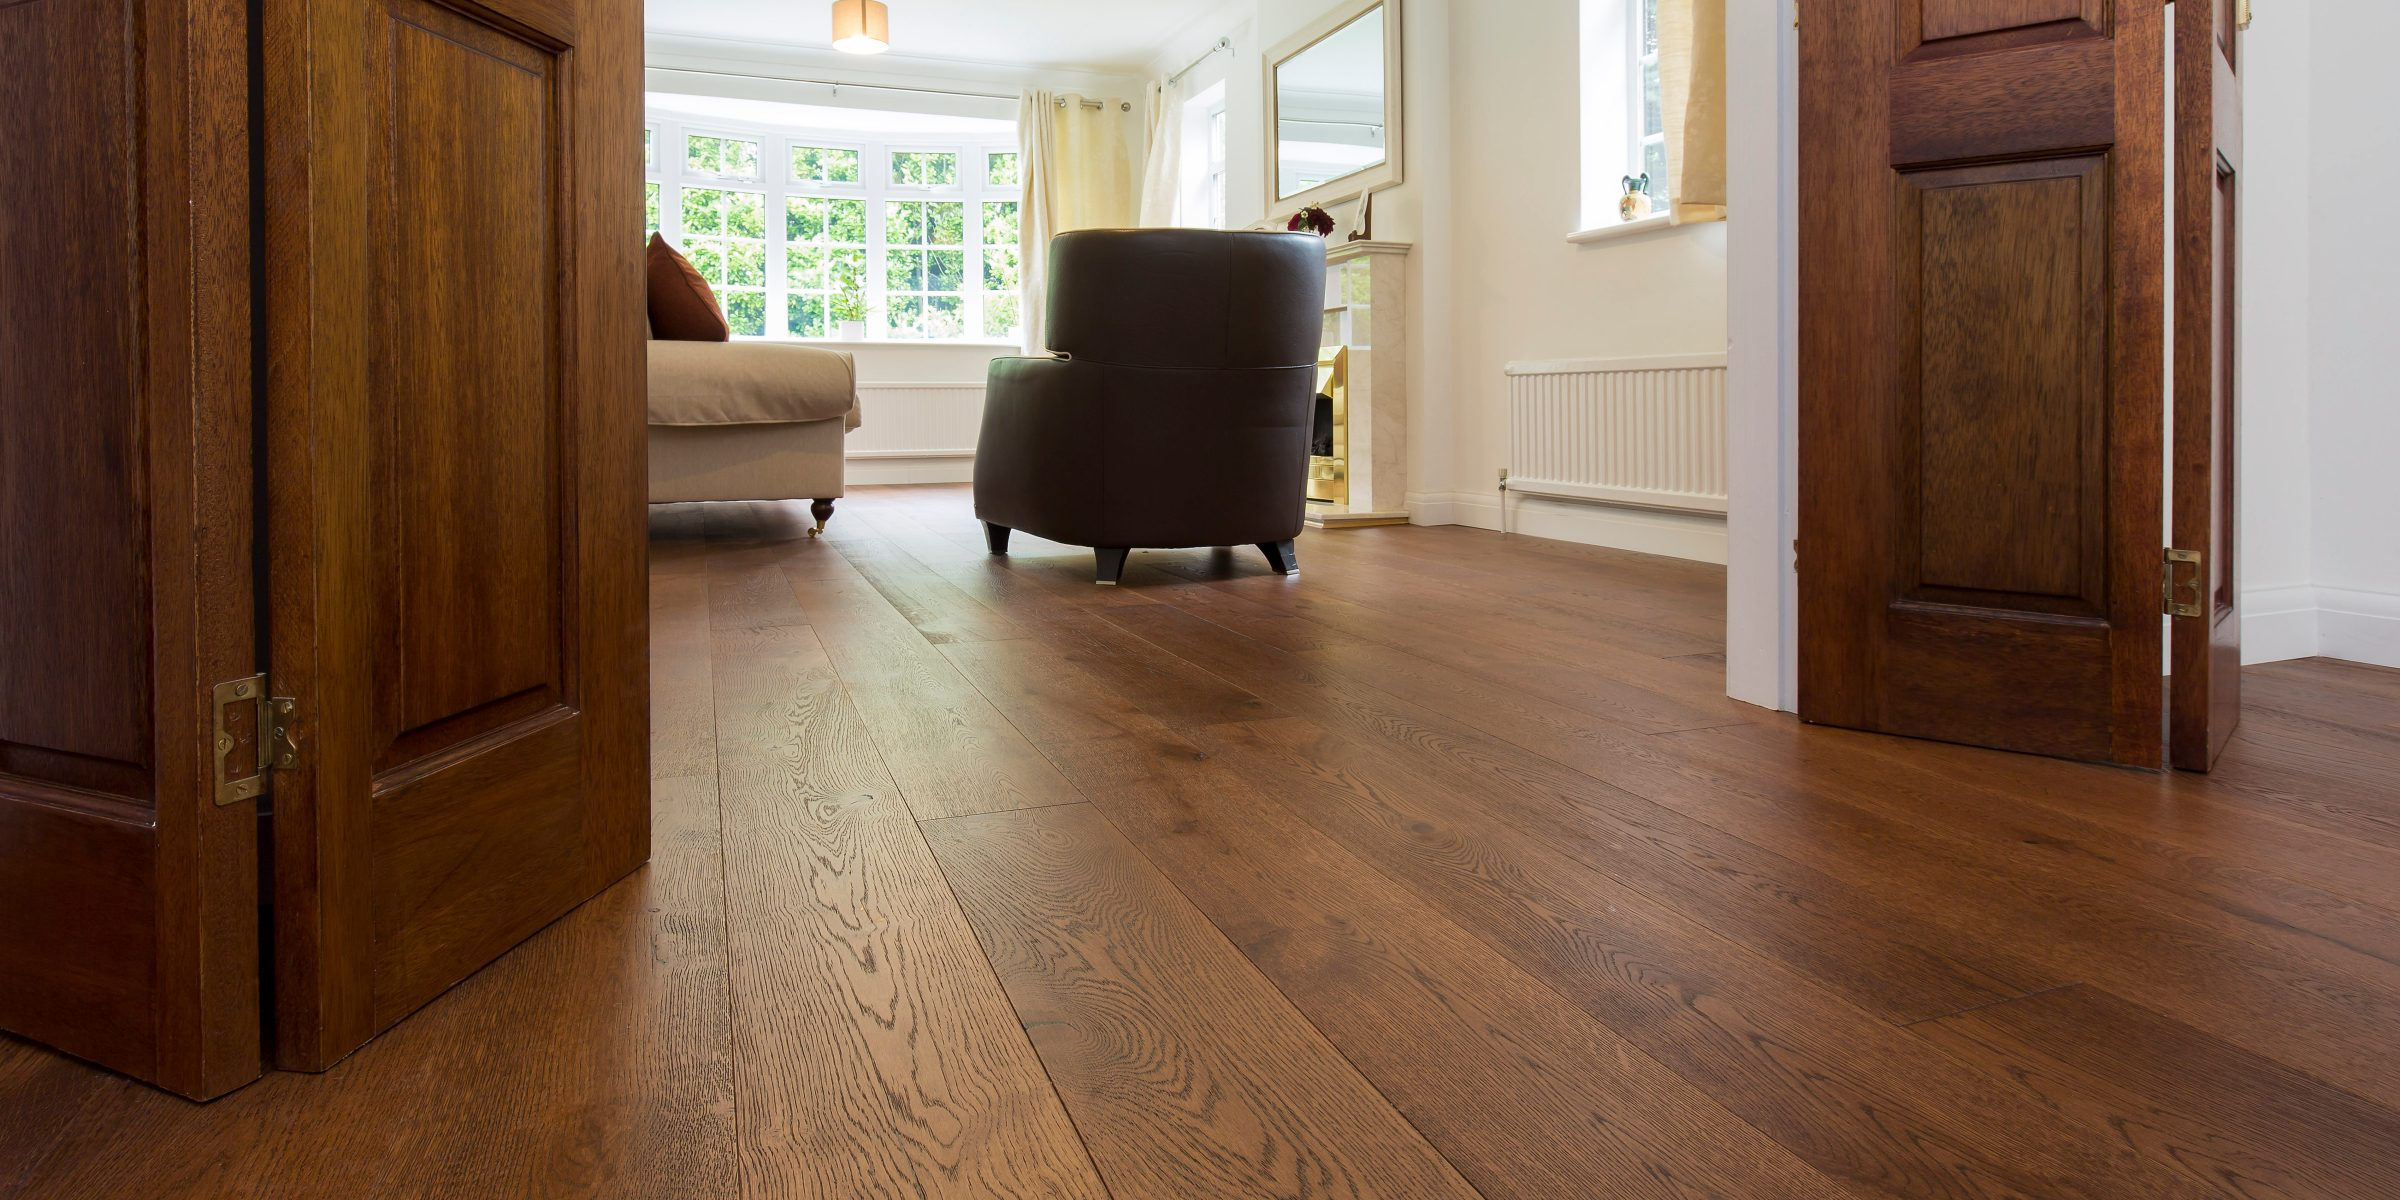 Abinger wood floors by V4